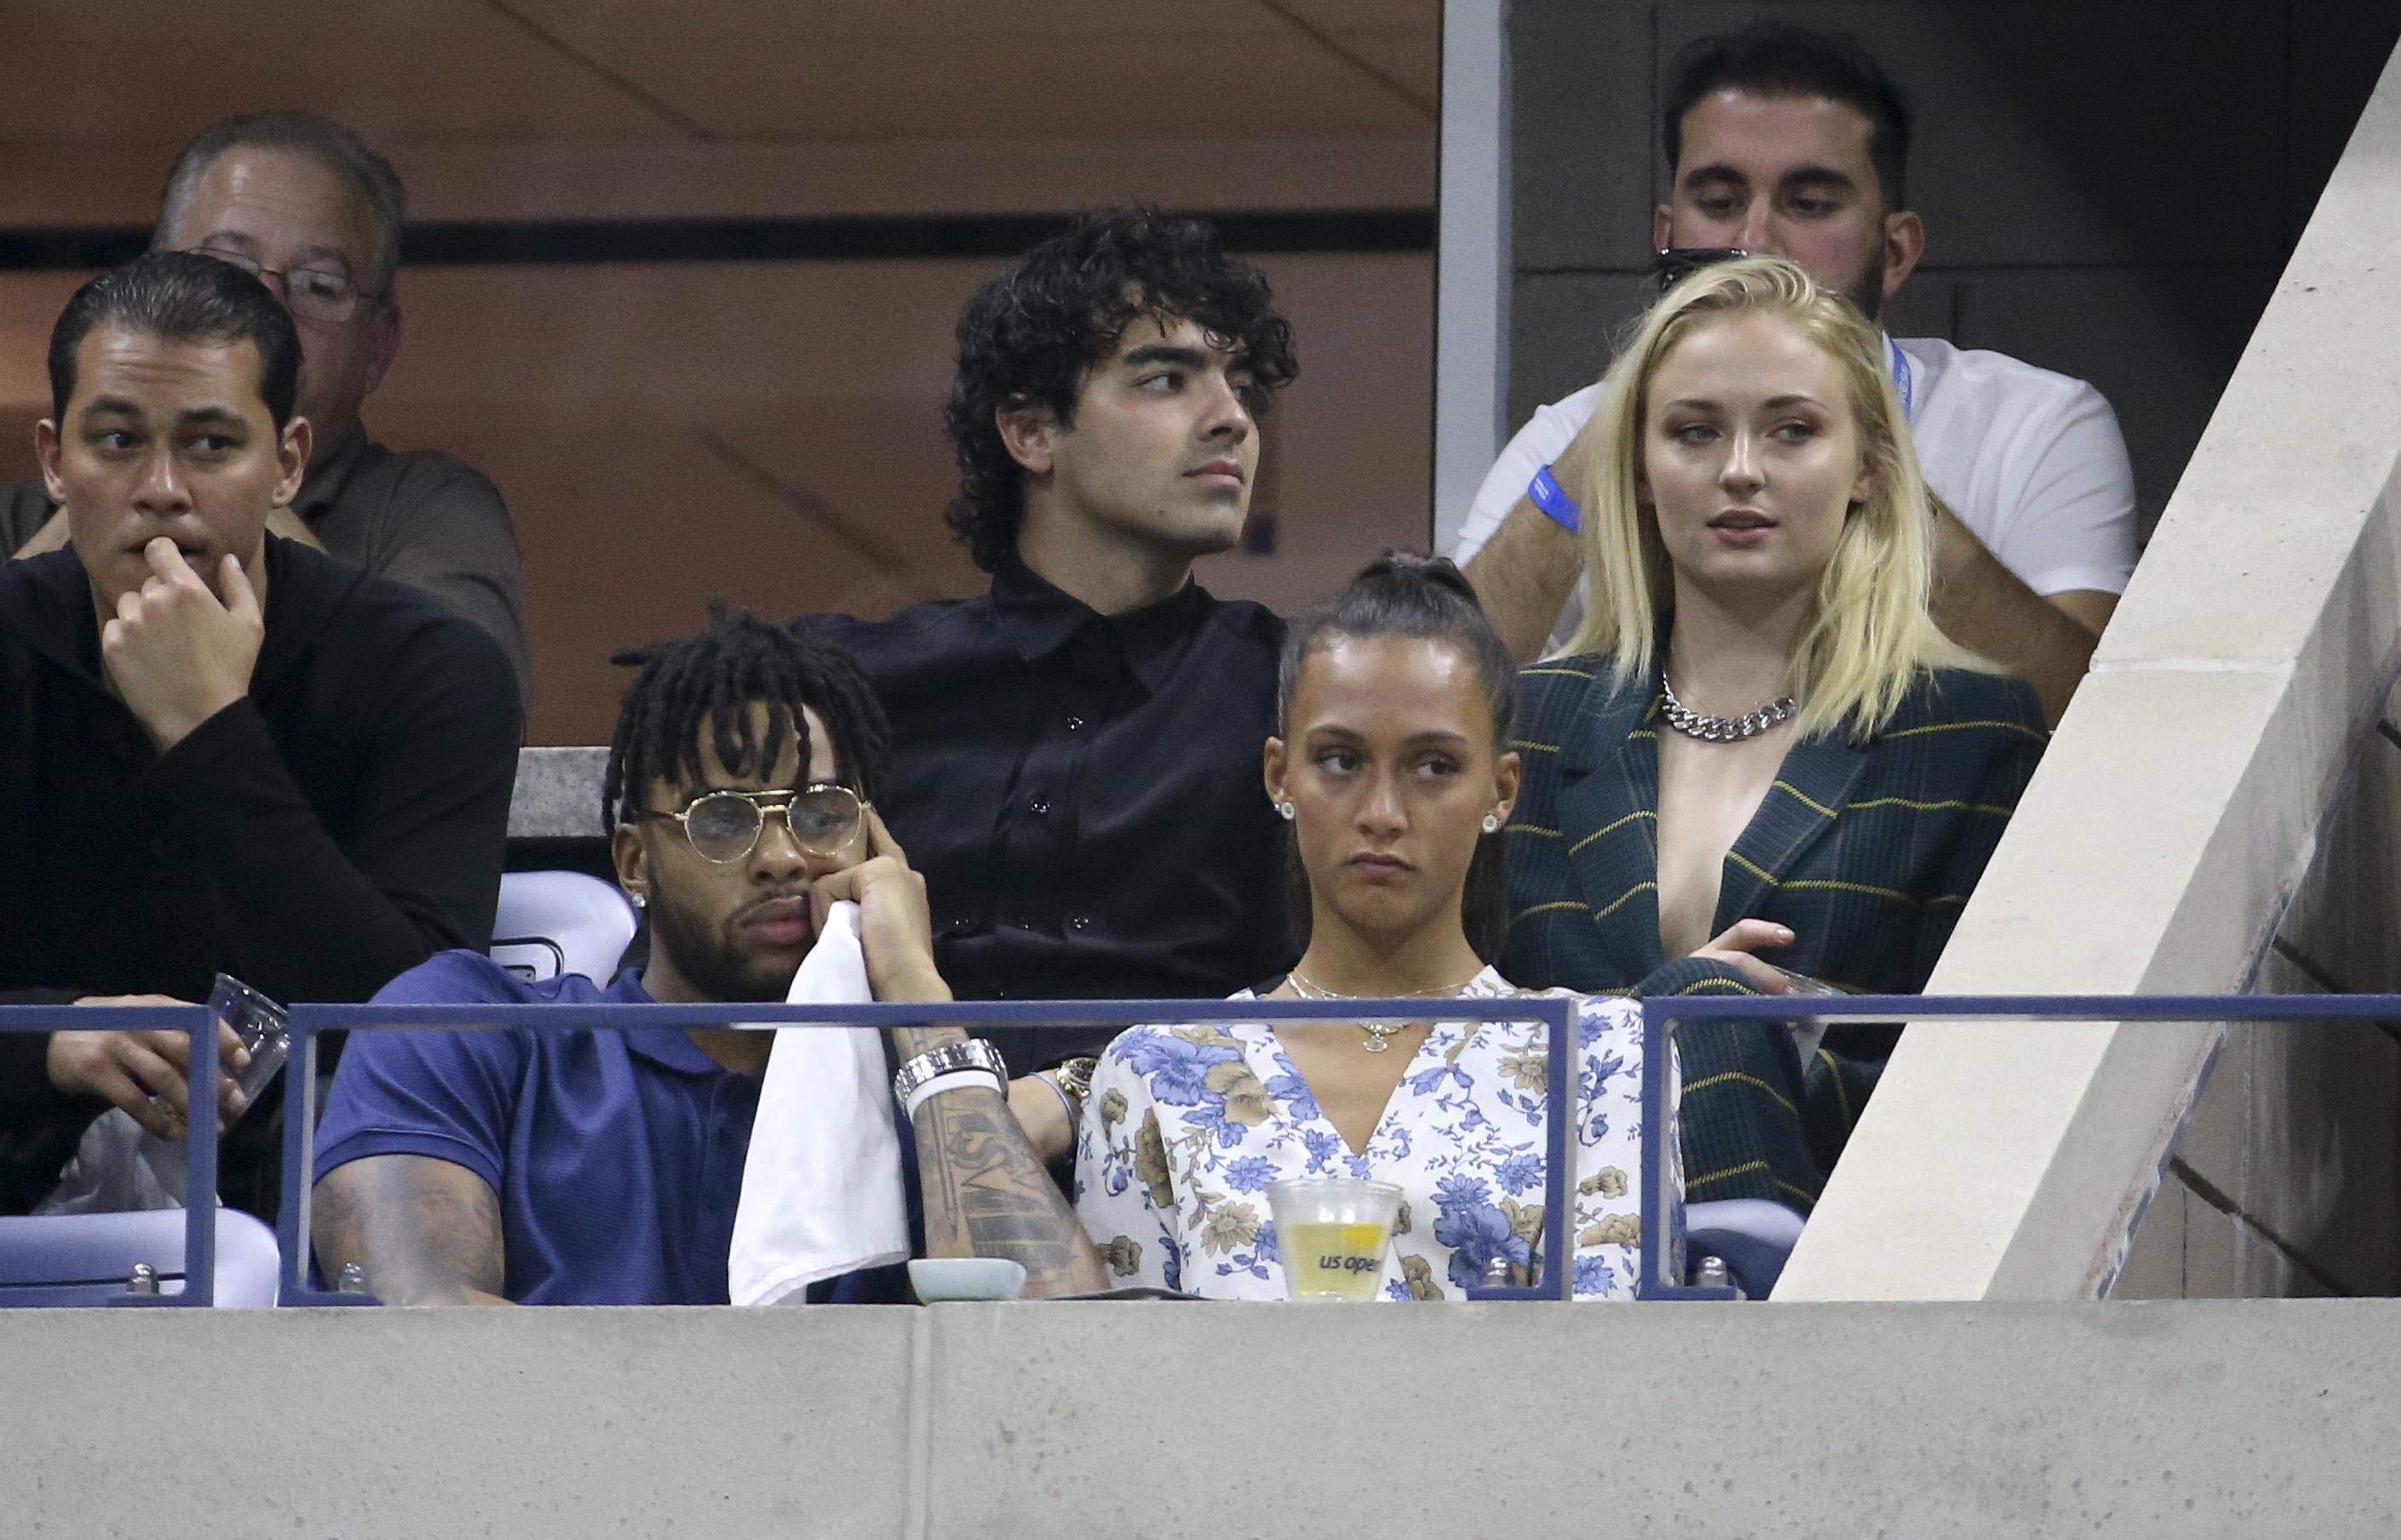 Pop star Joe Jonas, middle, and Game of Thrones girlfriend Sophie Turner were in the crowd - NBA star D'Angelo Russell sat in front of them